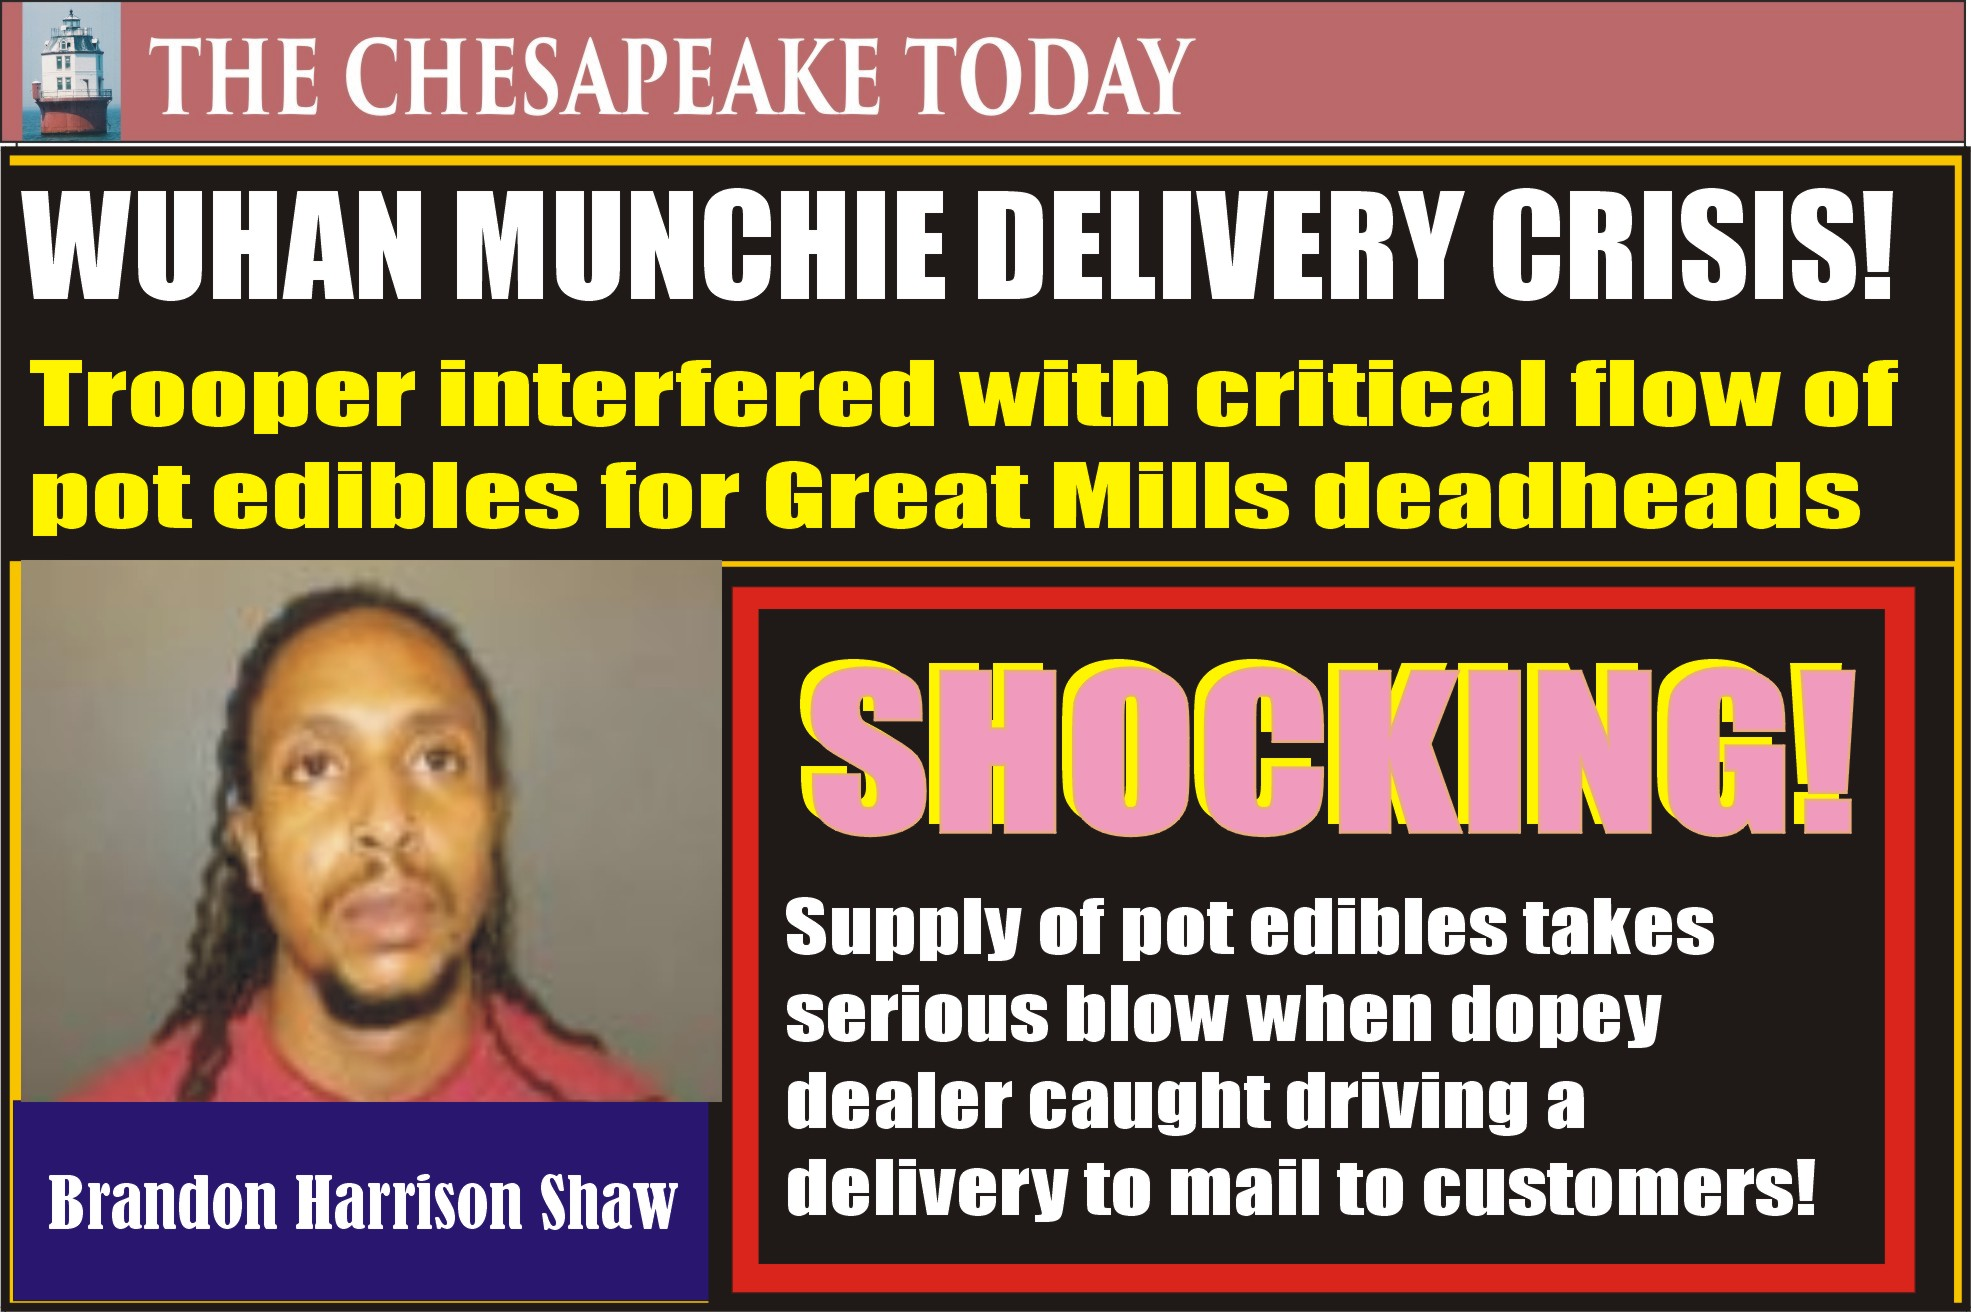 MARYLAND STATE POLICE NEWS BEAT: Brandon Shaw will have to bake new pot edibles for Christmas stocking stuffers; needs new supply of Postal shipping boxes for next round of deliveries to drug customers